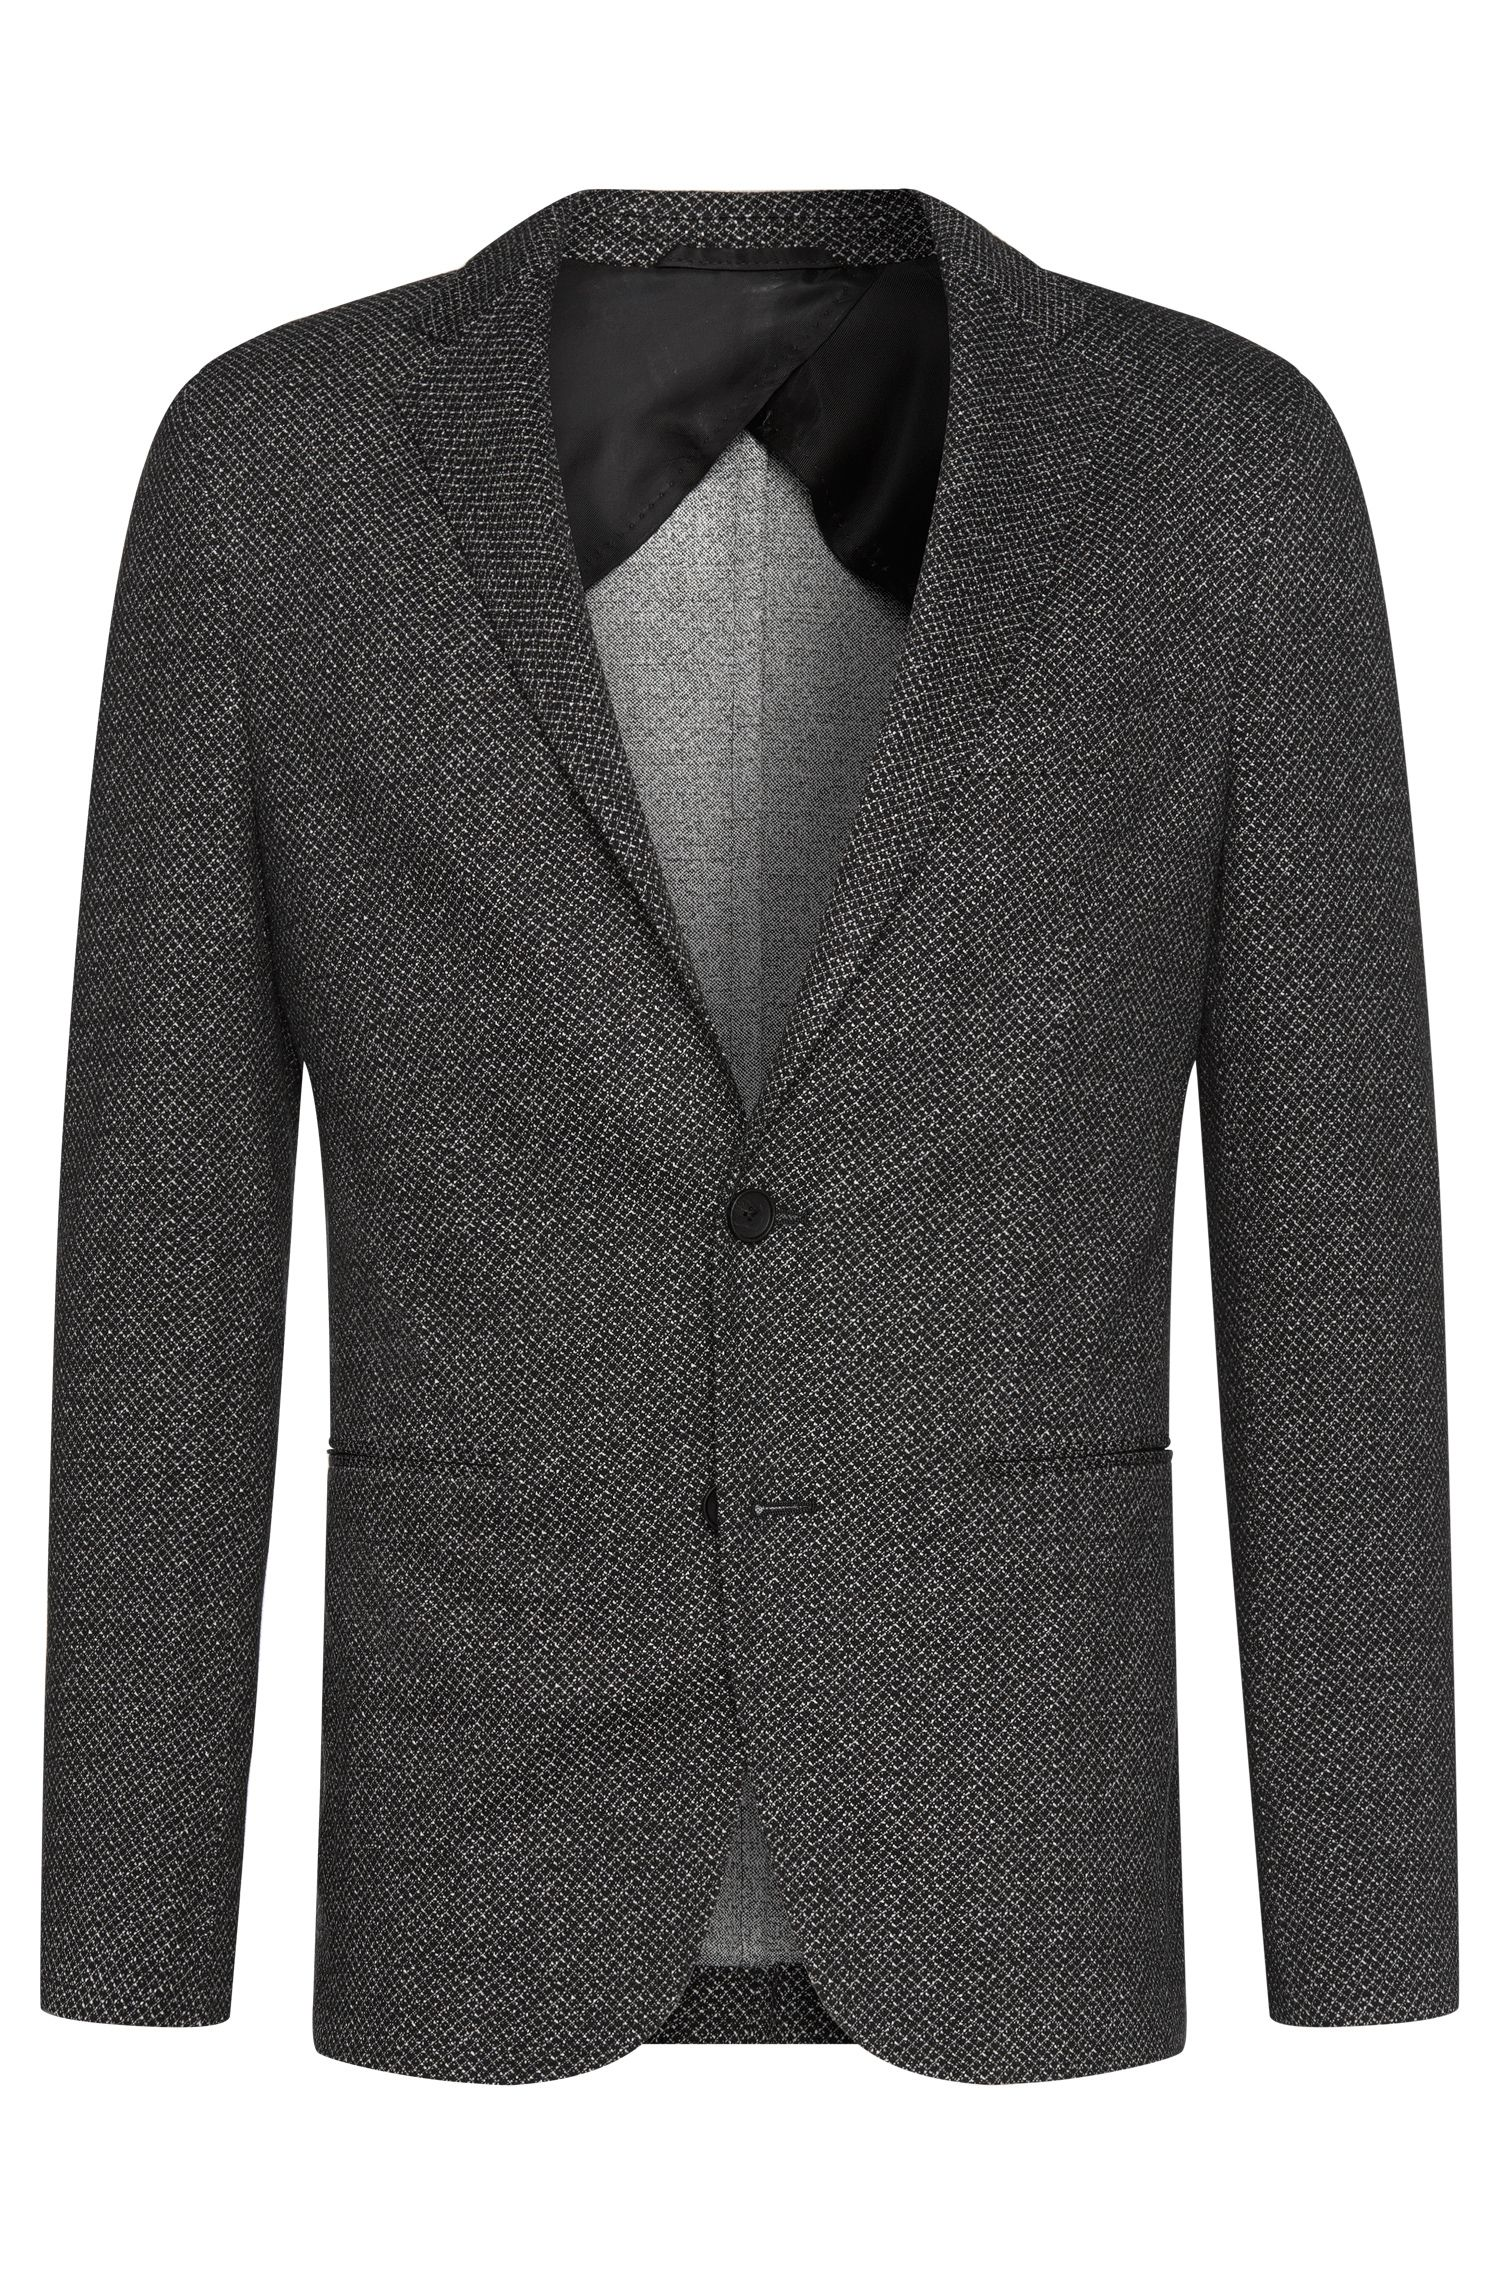 'Norwin' | Slim Fit, Jersey Patterned Sport Coat